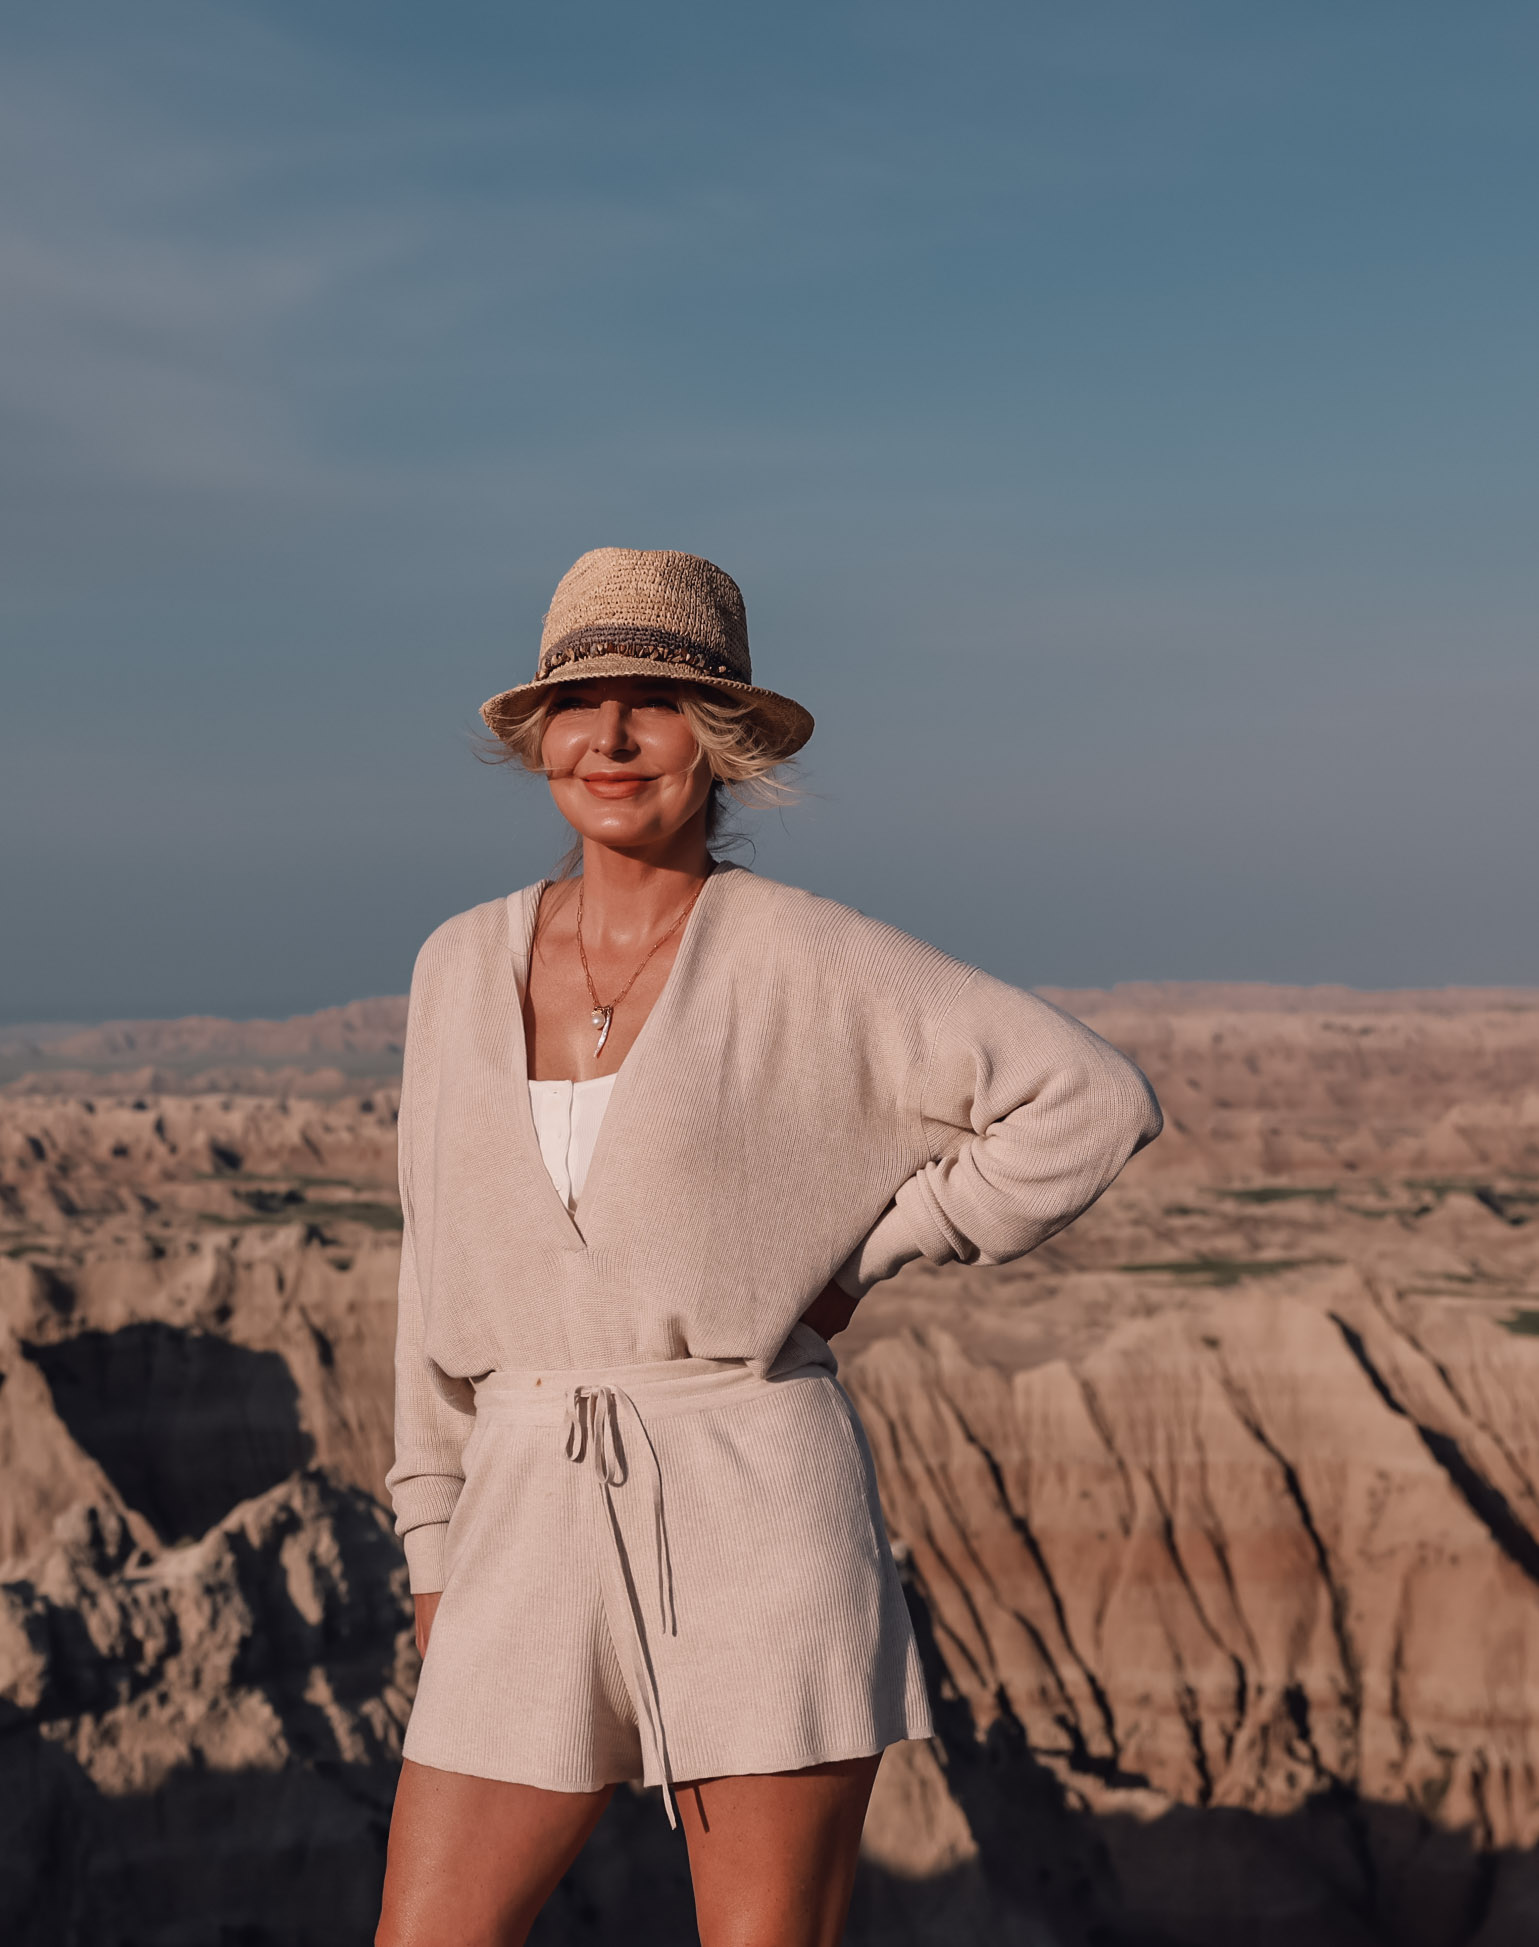 beige knit sweater and shorts set paired with packable straw fedora hat in Badlands National Park on fashion over 40 blogger Erin Busbee